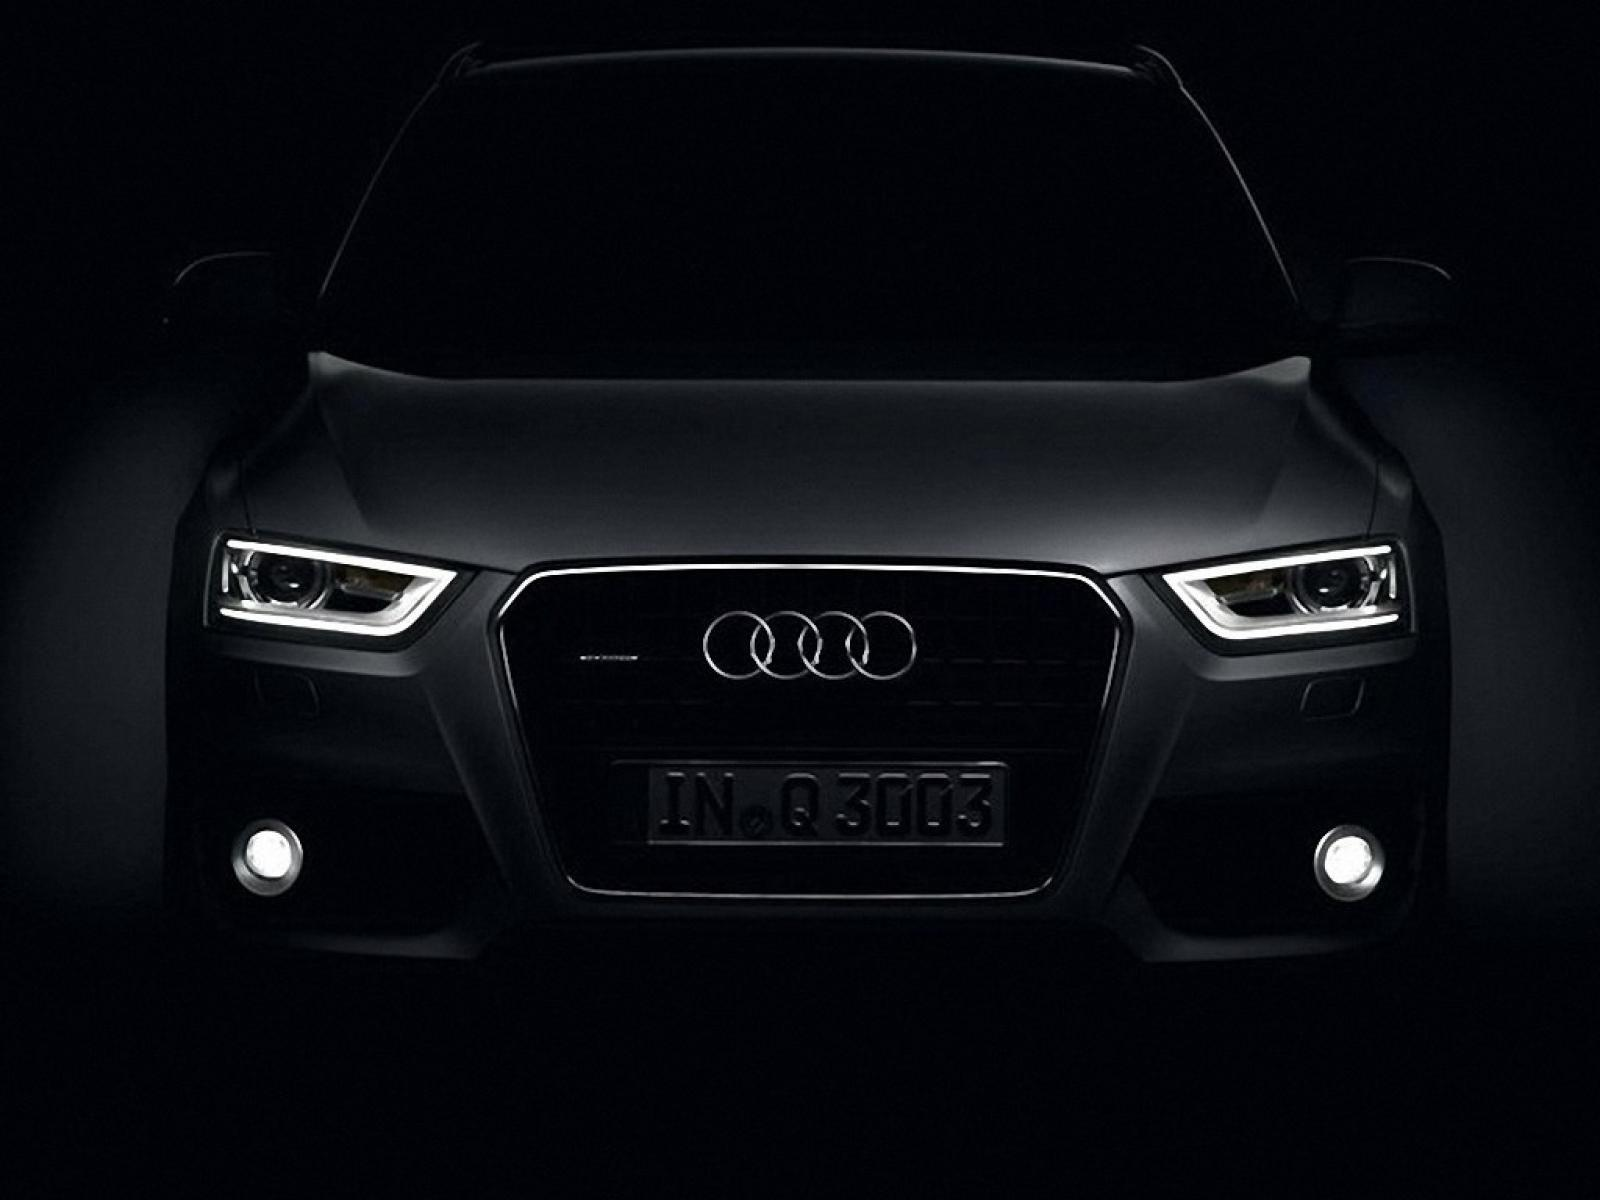 Audi Q3 Wallpapers,AUTO SHANGHAI 2011 Wallpapers & Pictures Free ...